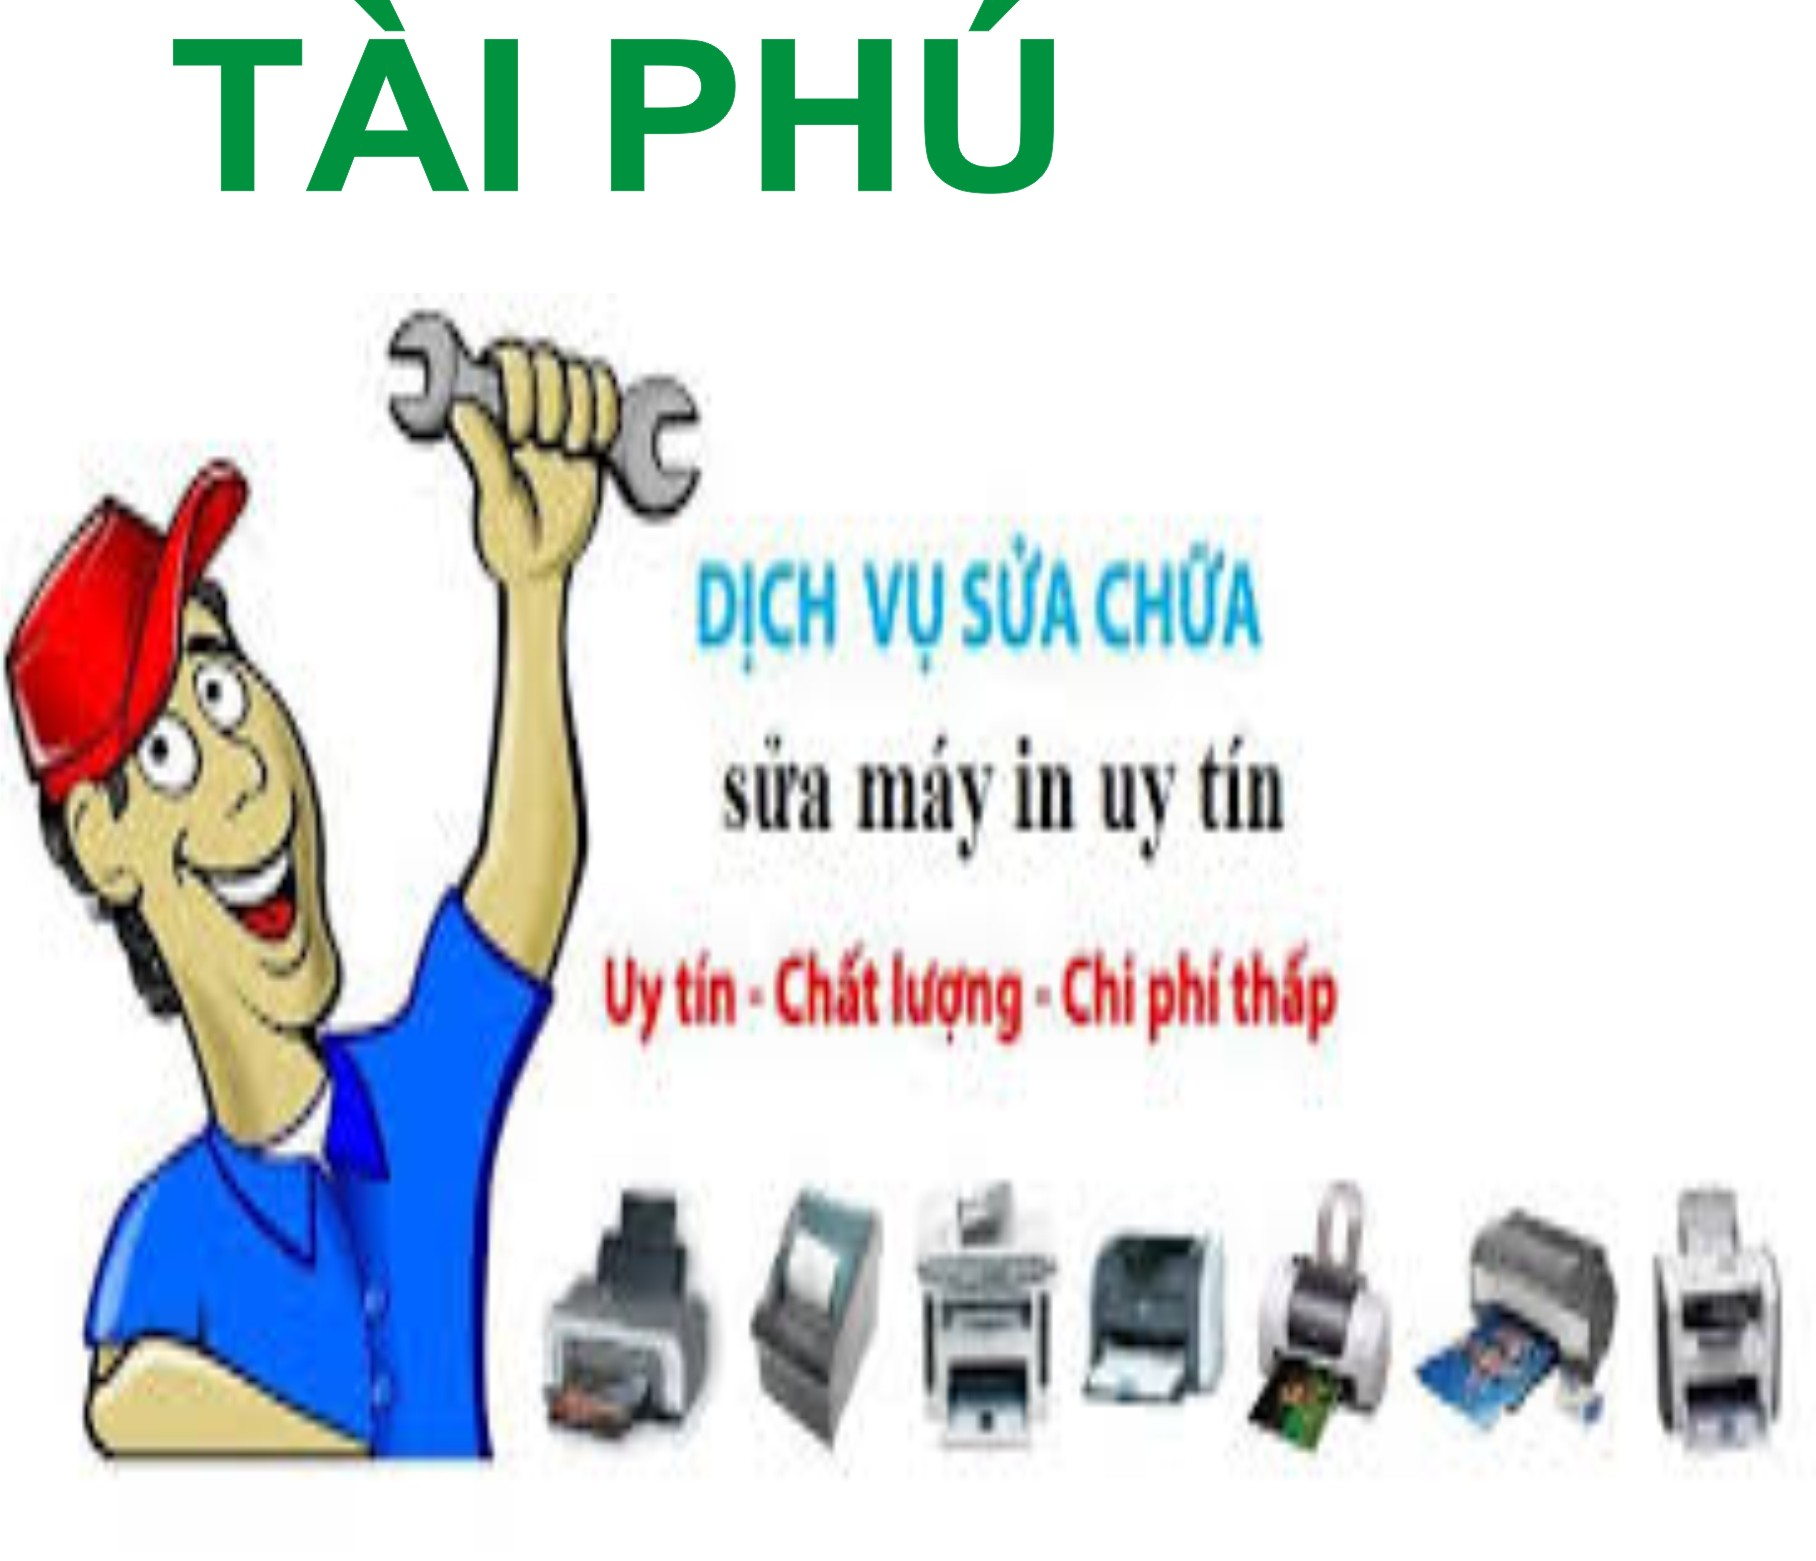 DO MUC MAY IN TAI NHA 0968973696